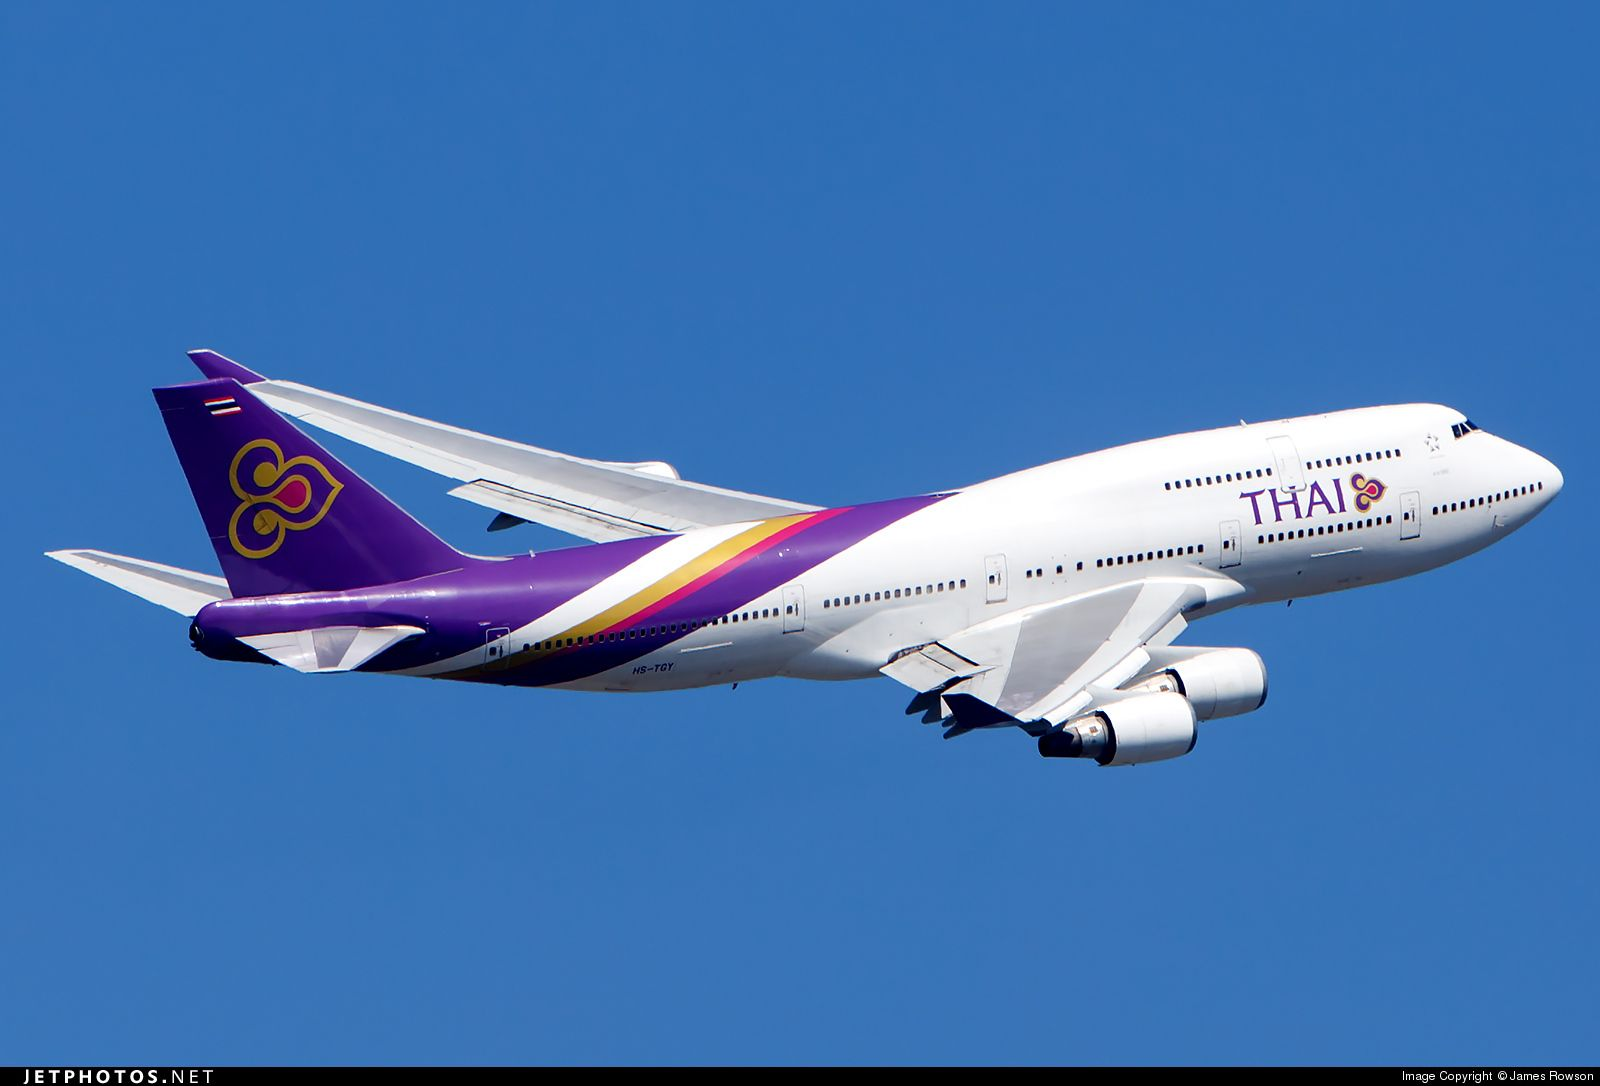 Photo of HS-TGY Boeing 747-4D7 by James Rowson